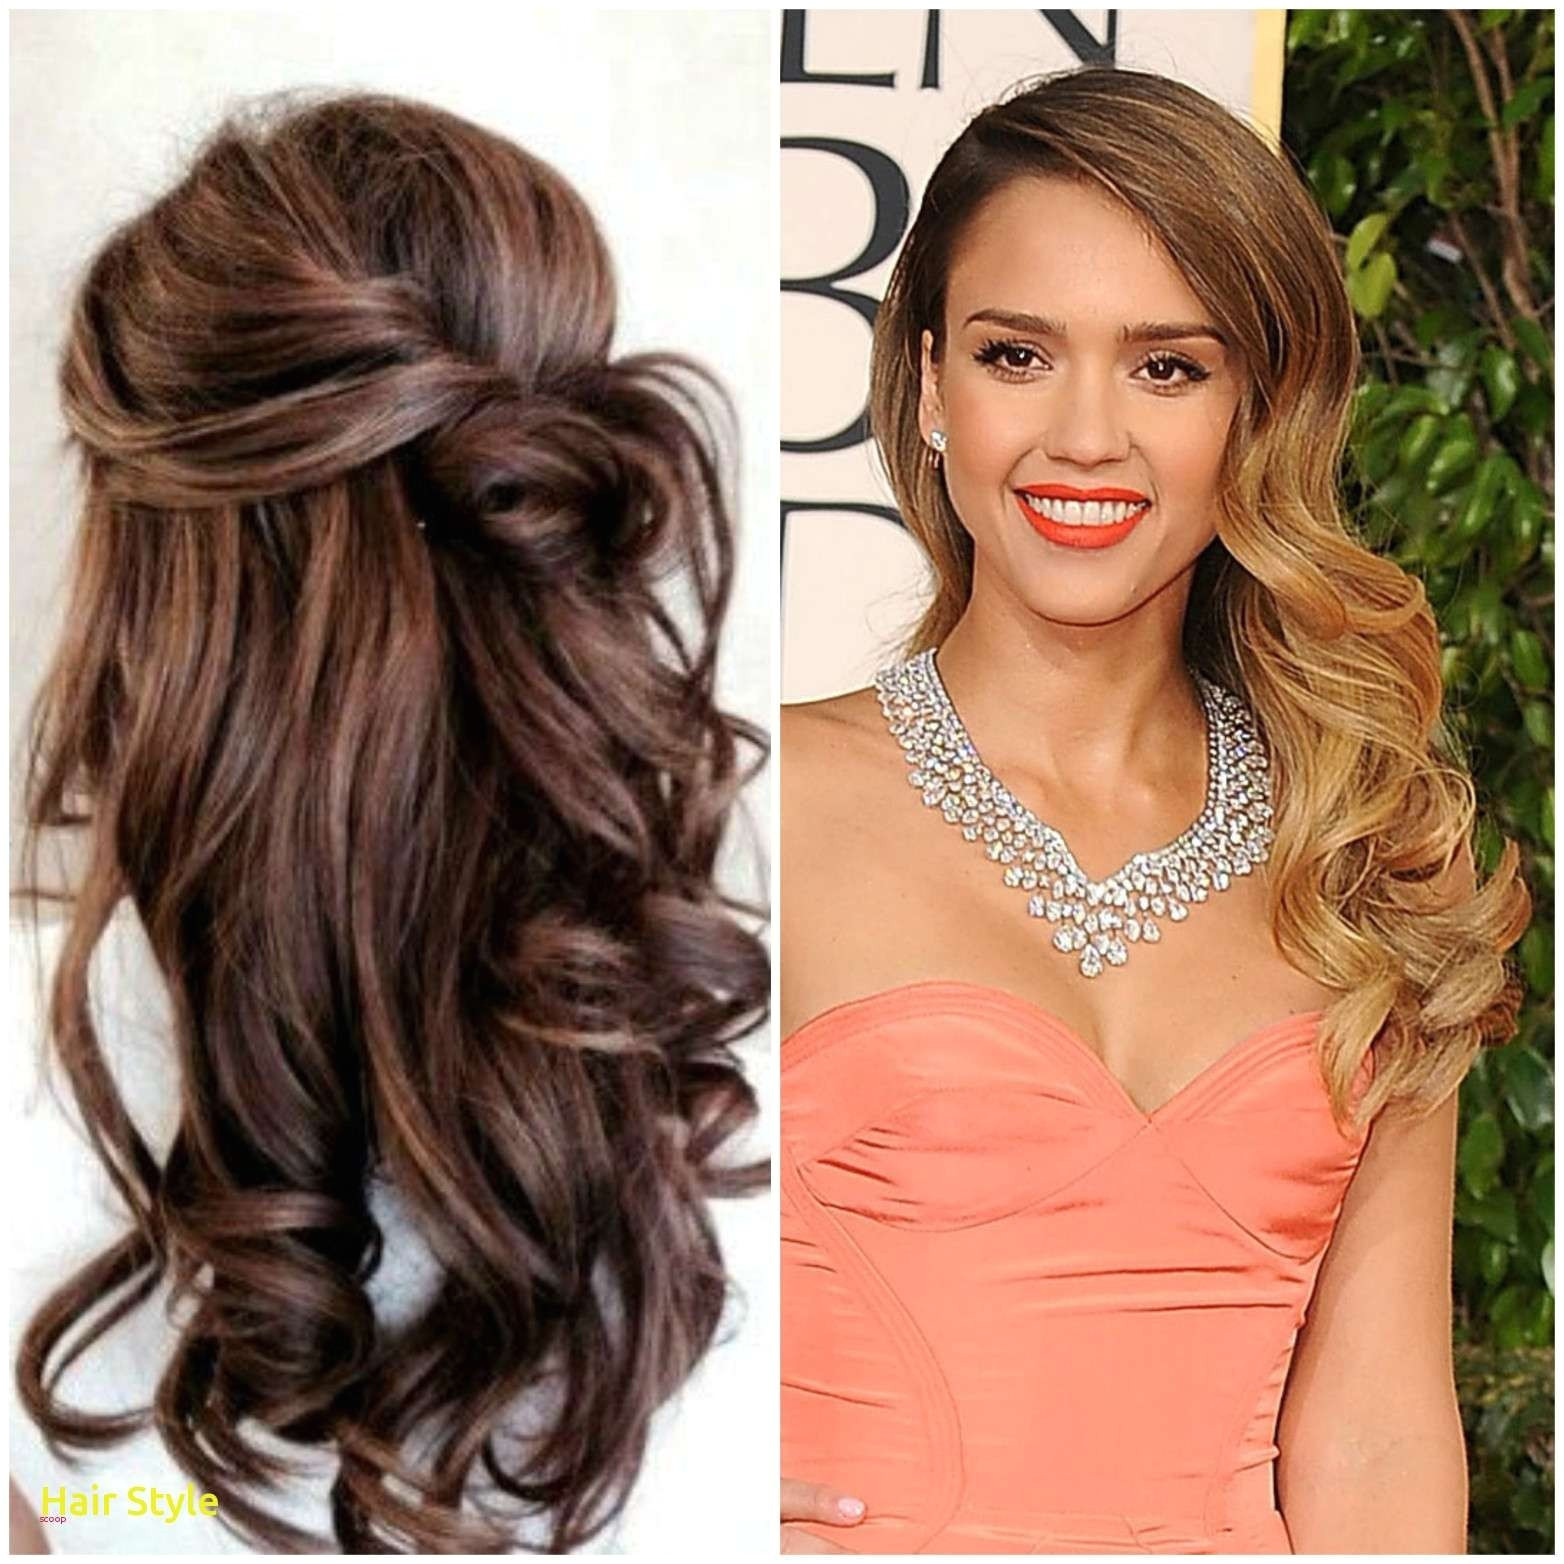 Girl Party Hairstyles Elegant Updos for Long Hair Weddings Enchanting Hairstyle Wedding Awesome Girl Party